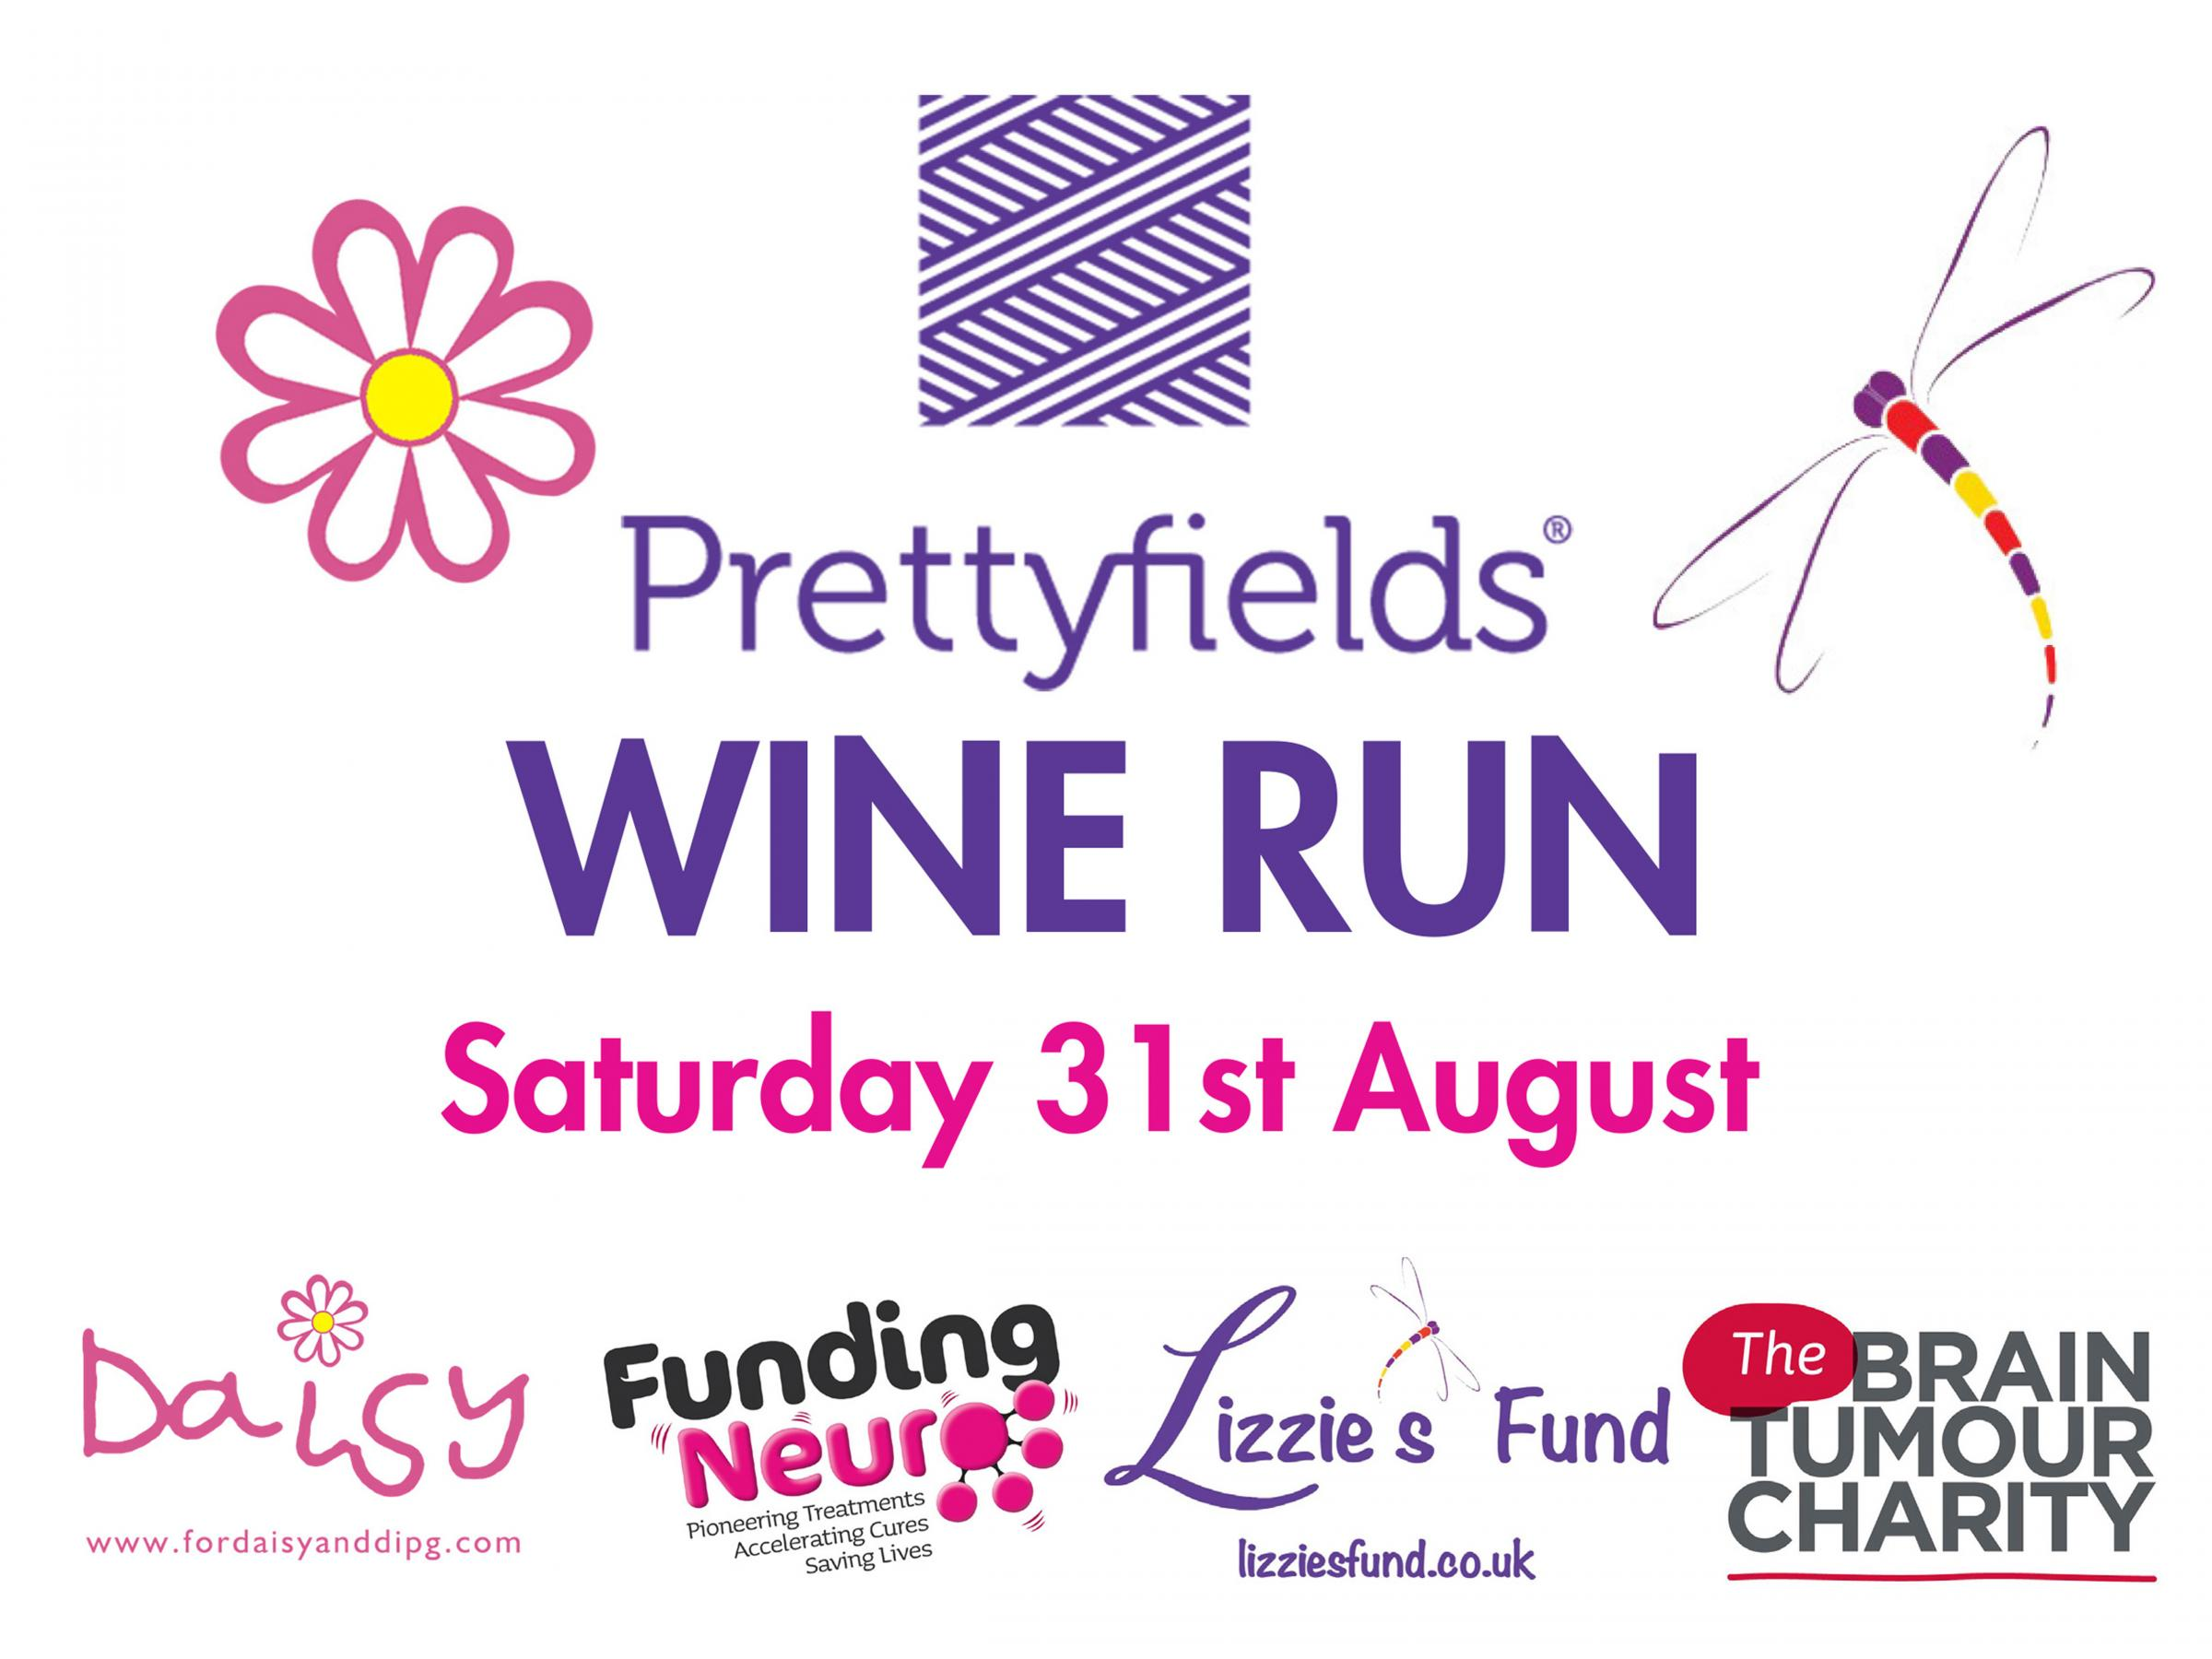 Prettyfields Wine Run